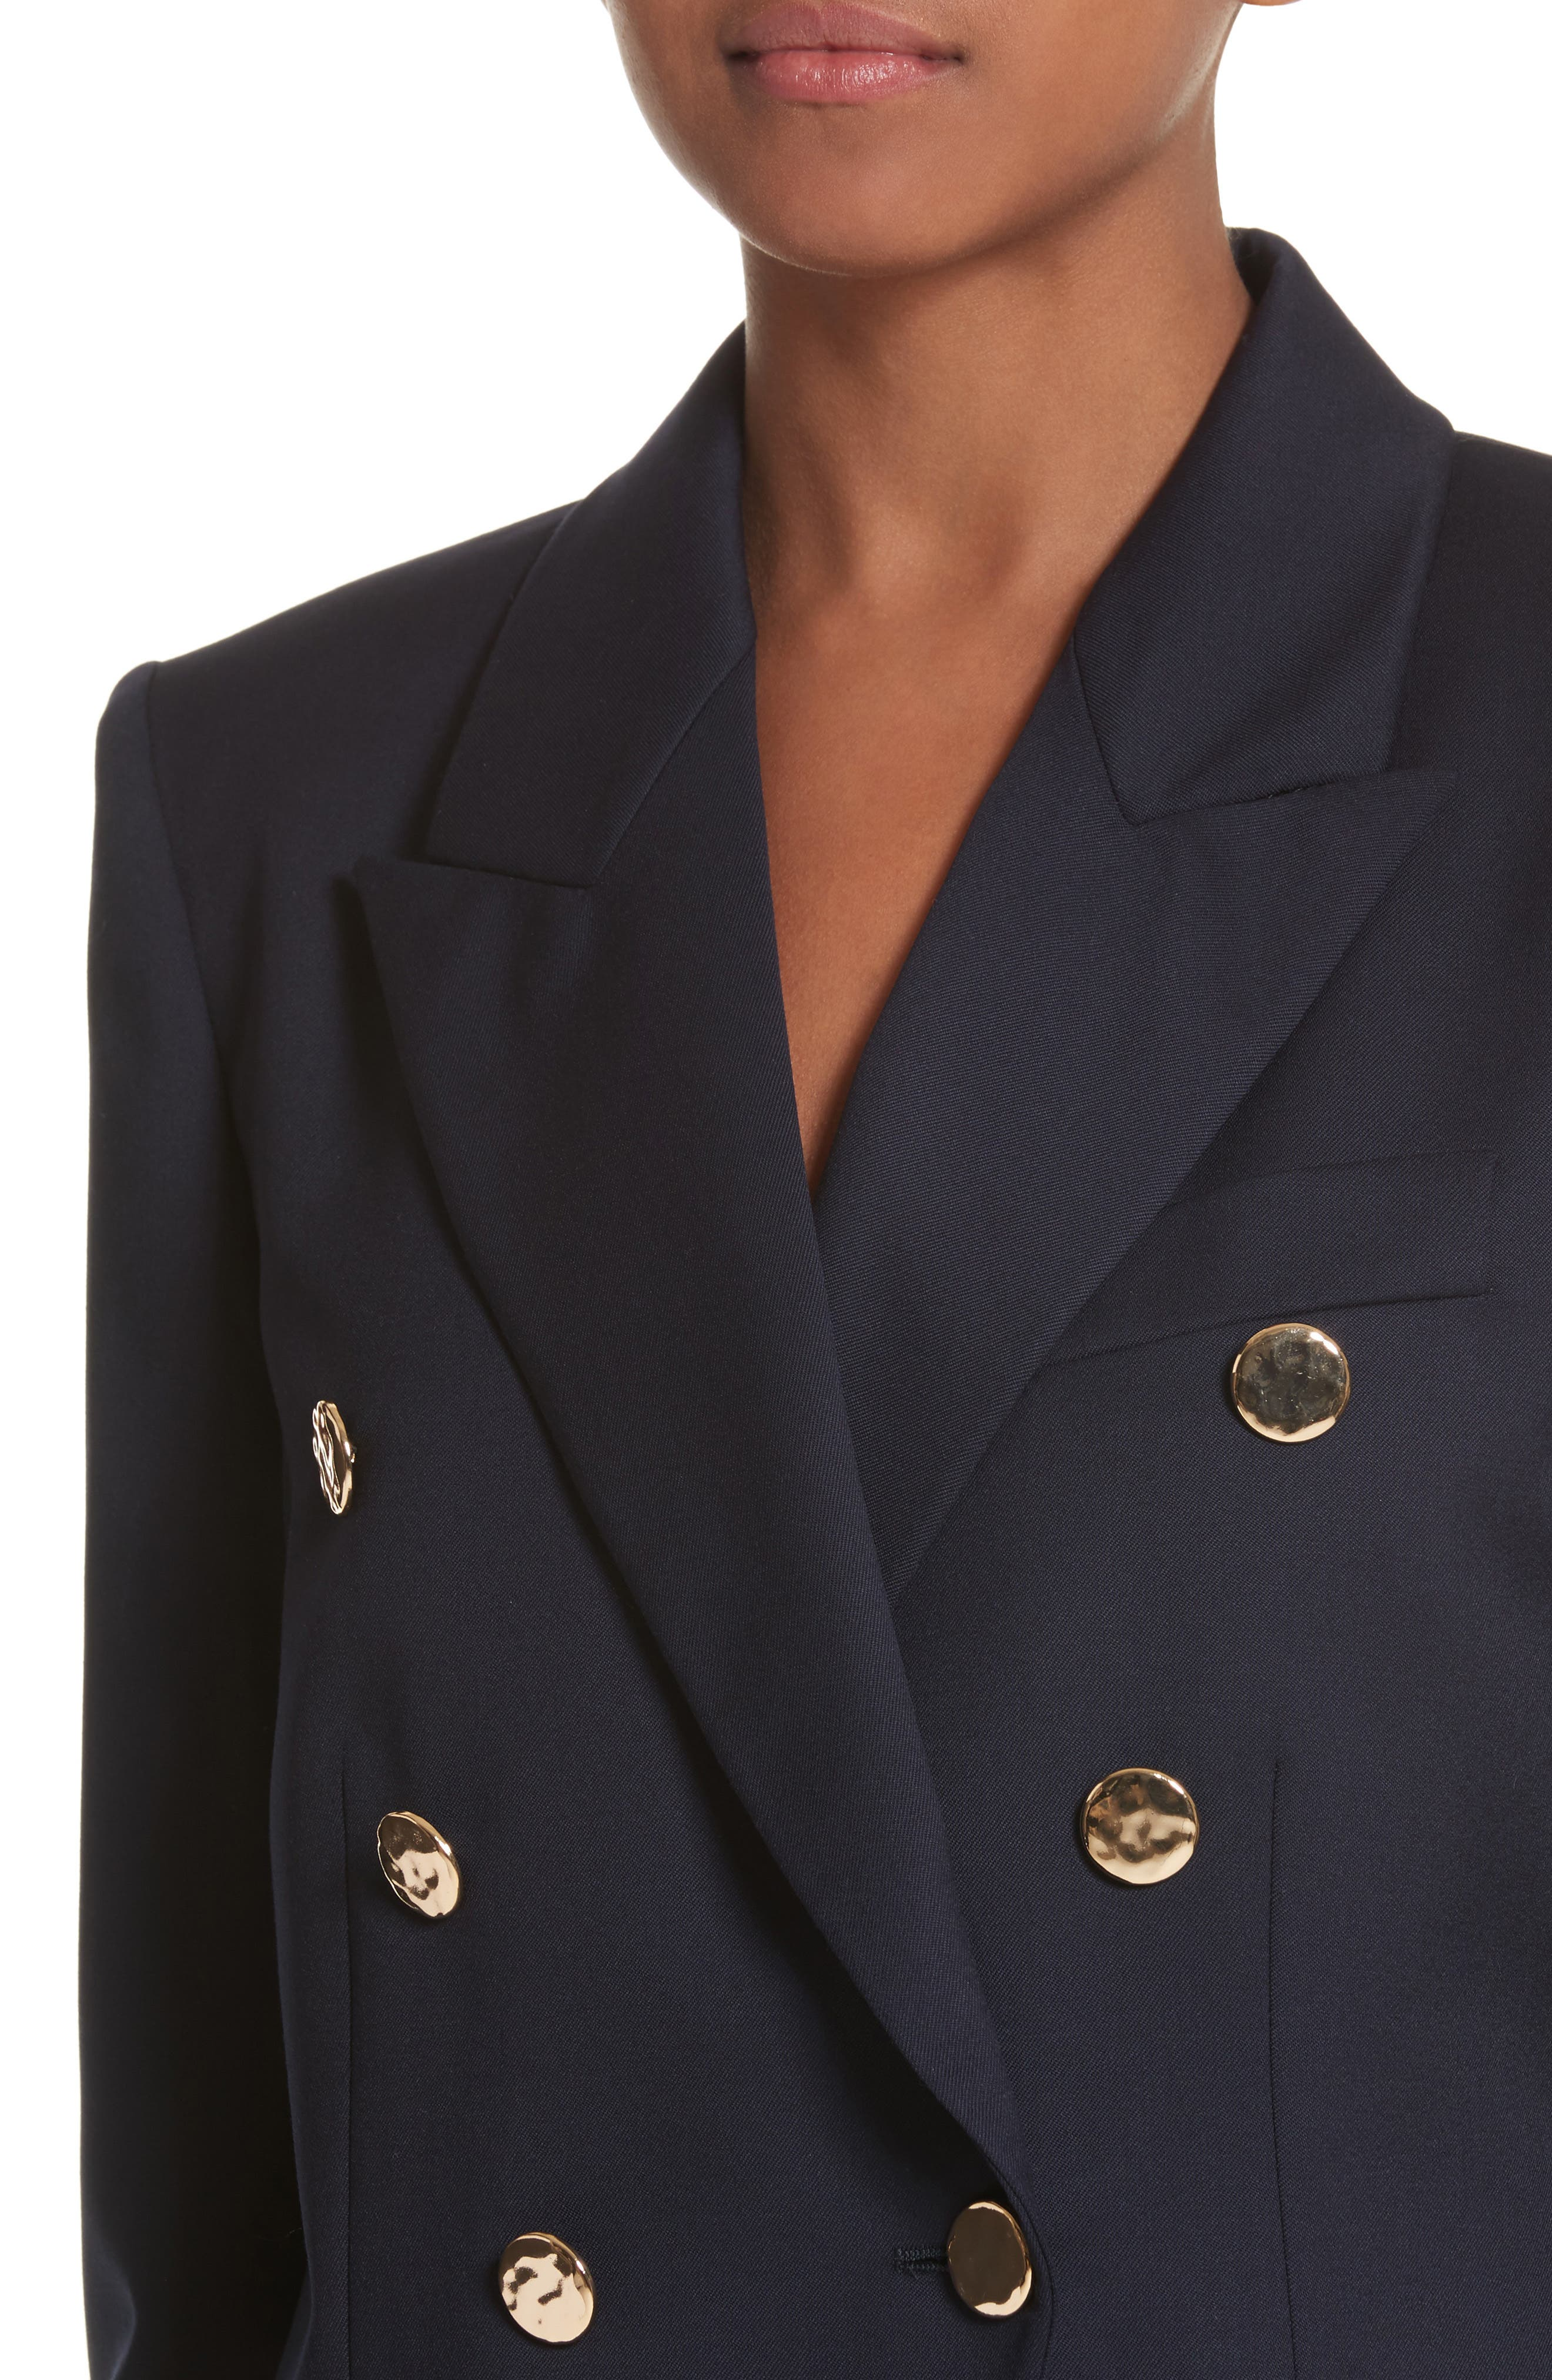 Double Breasted Wool Blazer,                             Alternate thumbnail 4, color,                             405